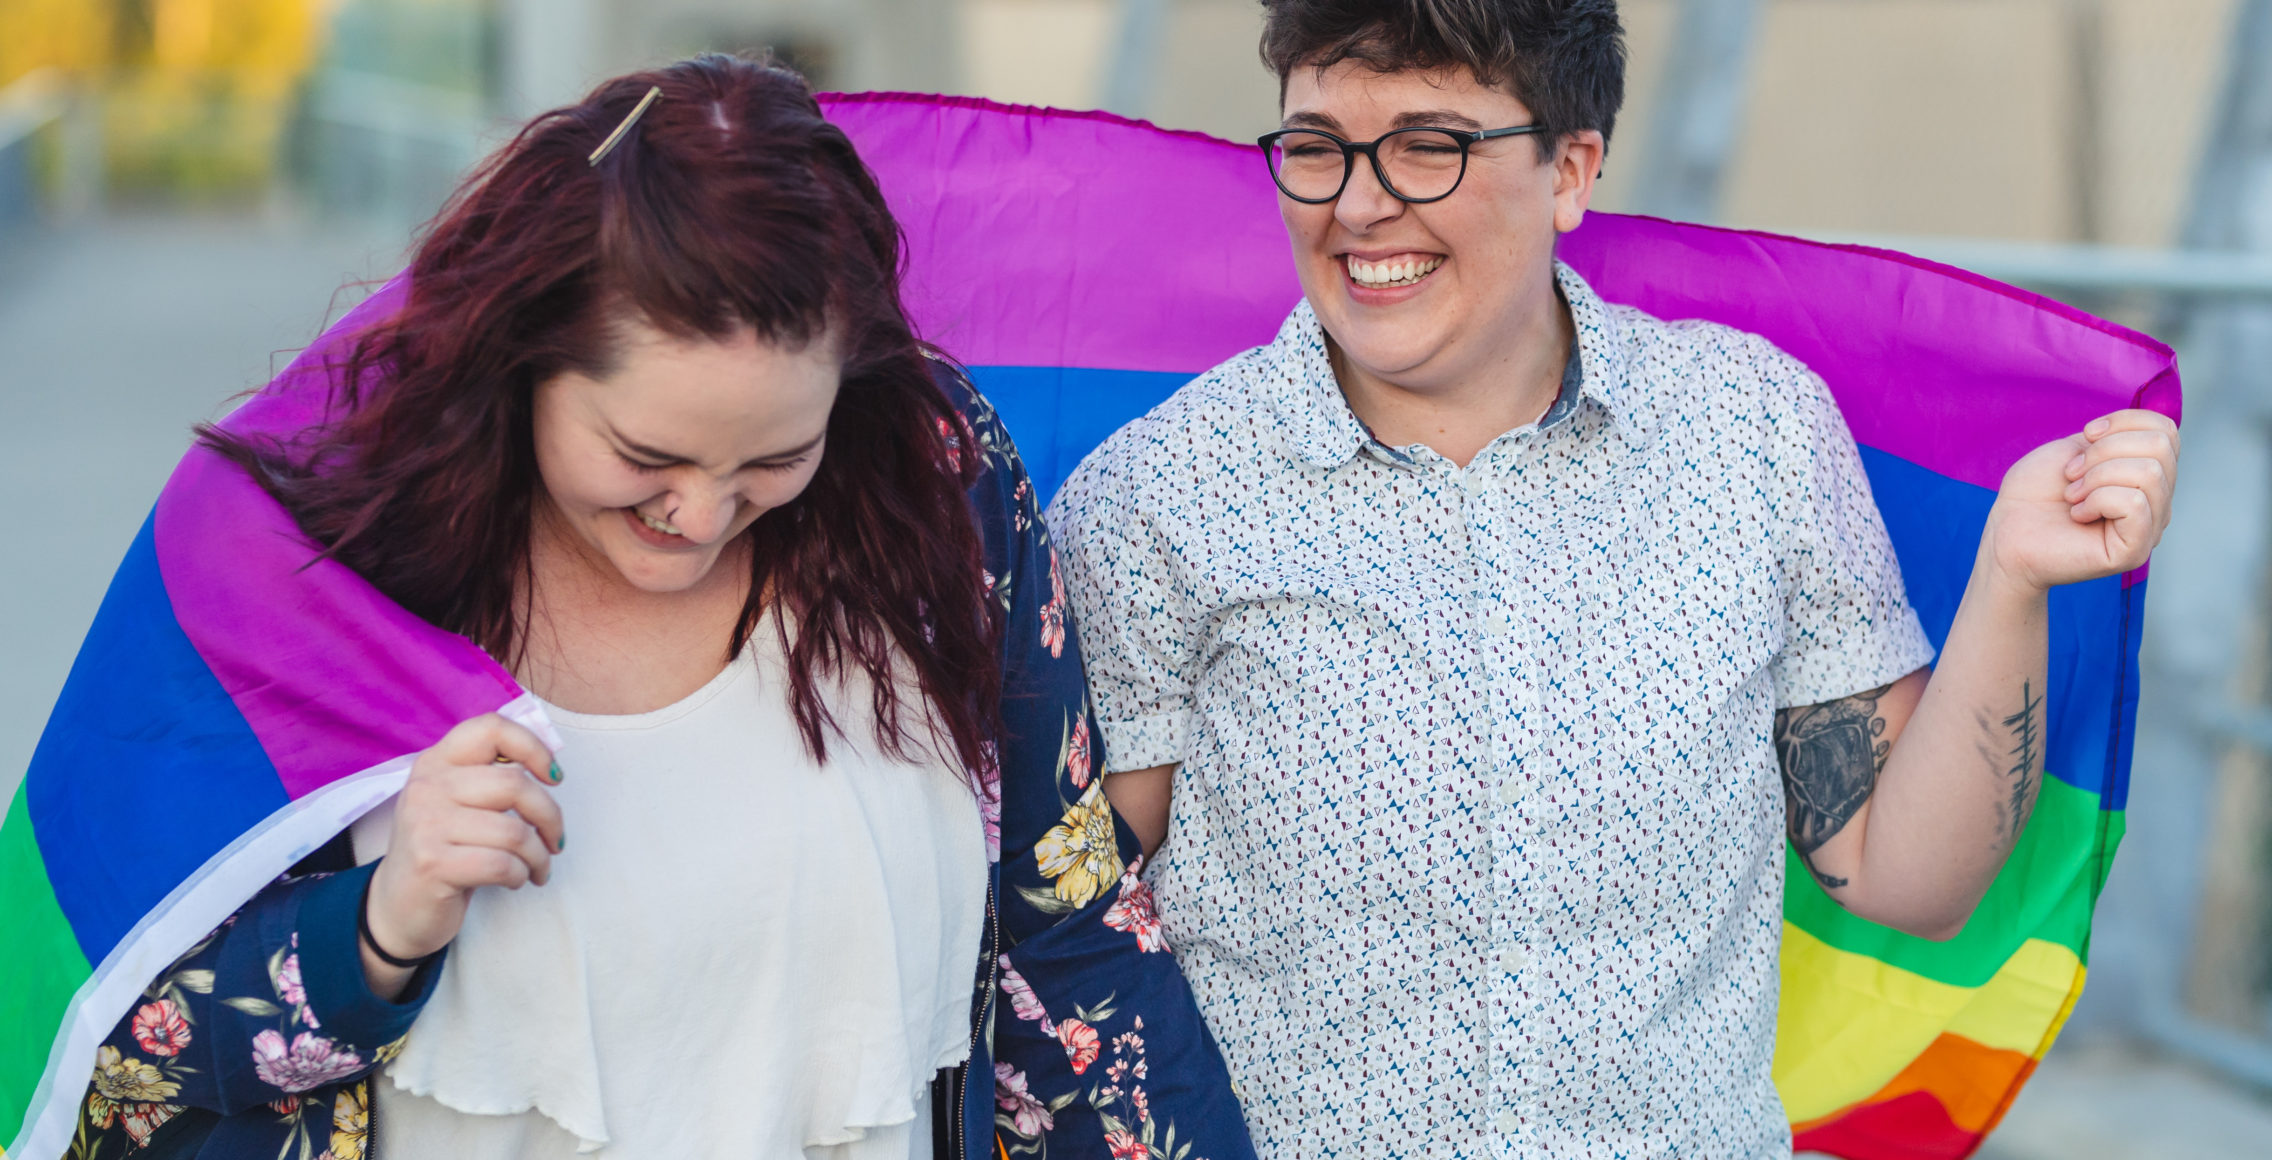 Two women laugh and carry the Pride Flag over their shoulders